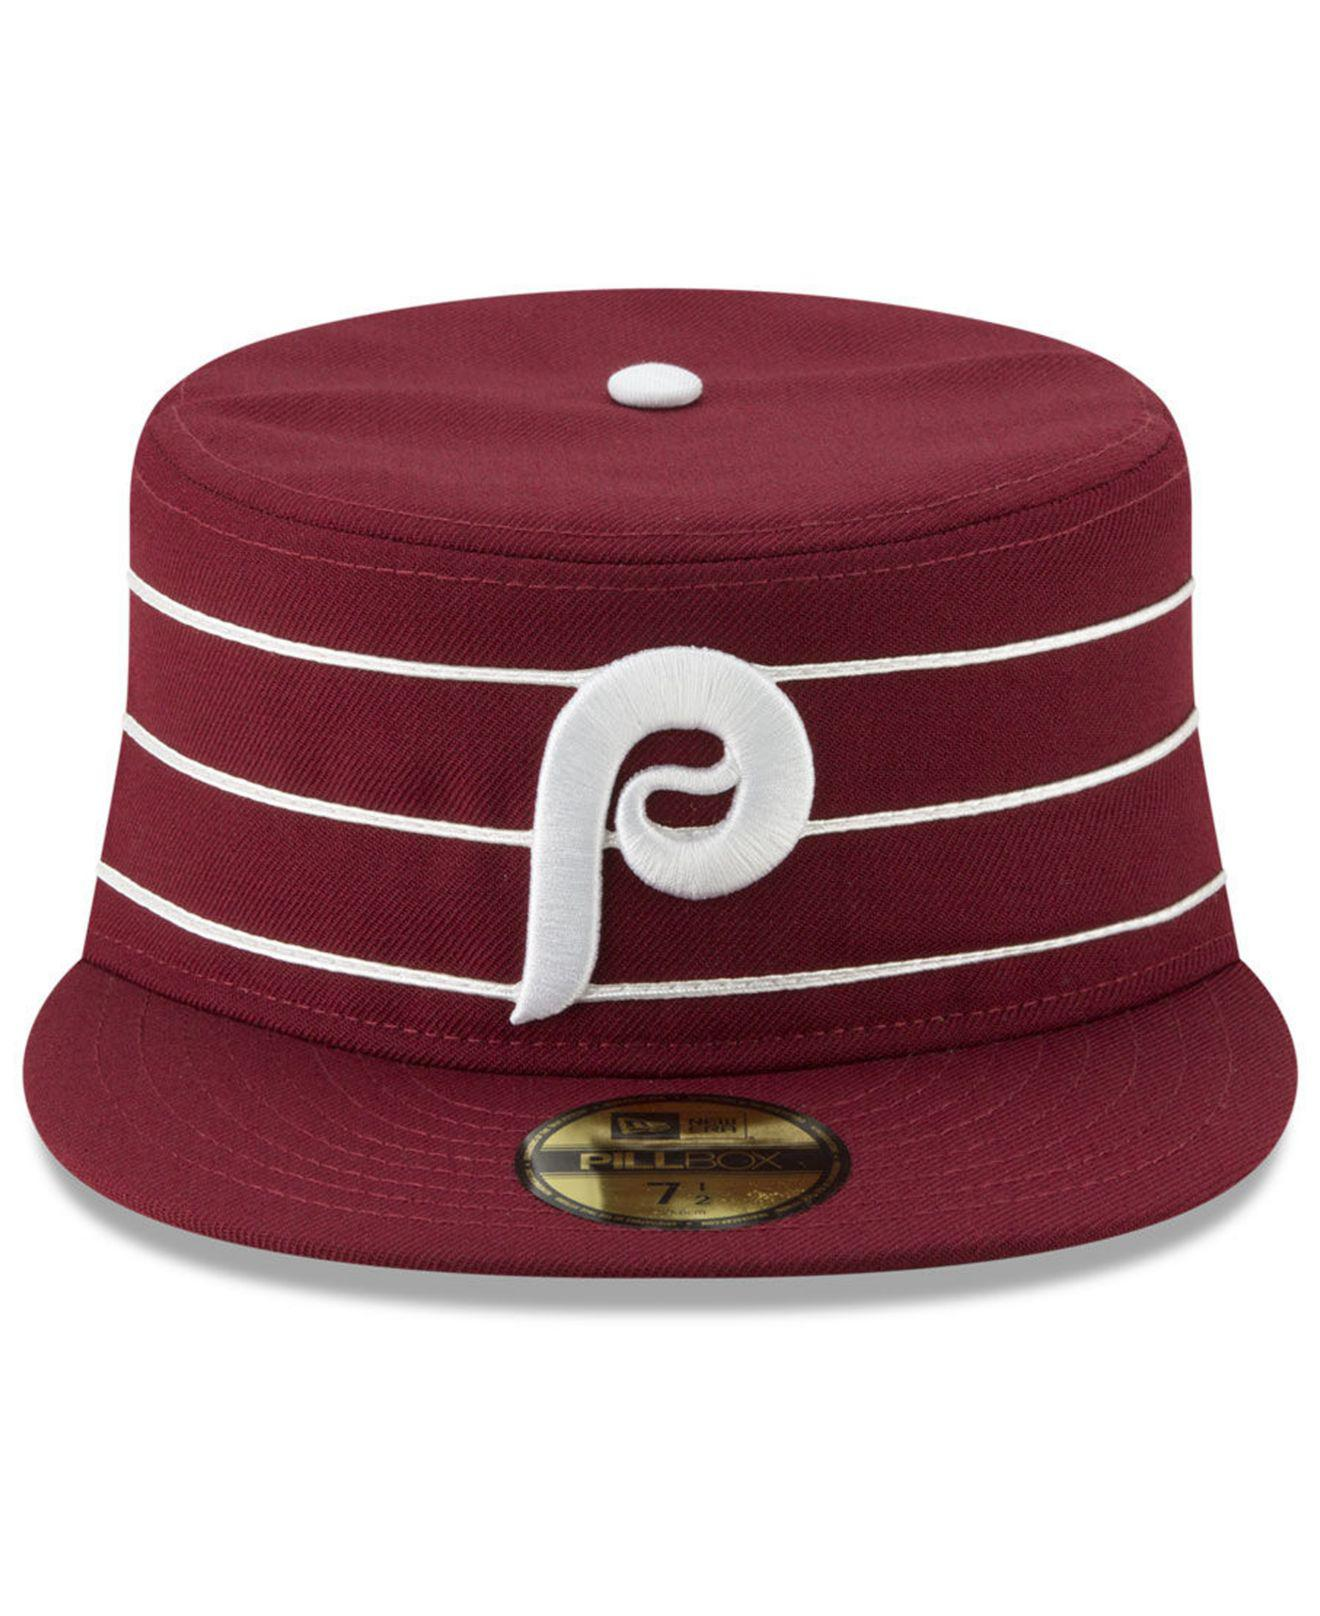 new styles c3441 1b246 ... reduced lyst ktz philadelphia phillies pillbox 59fifty fitted cap in  red for men e2c45 e17ca